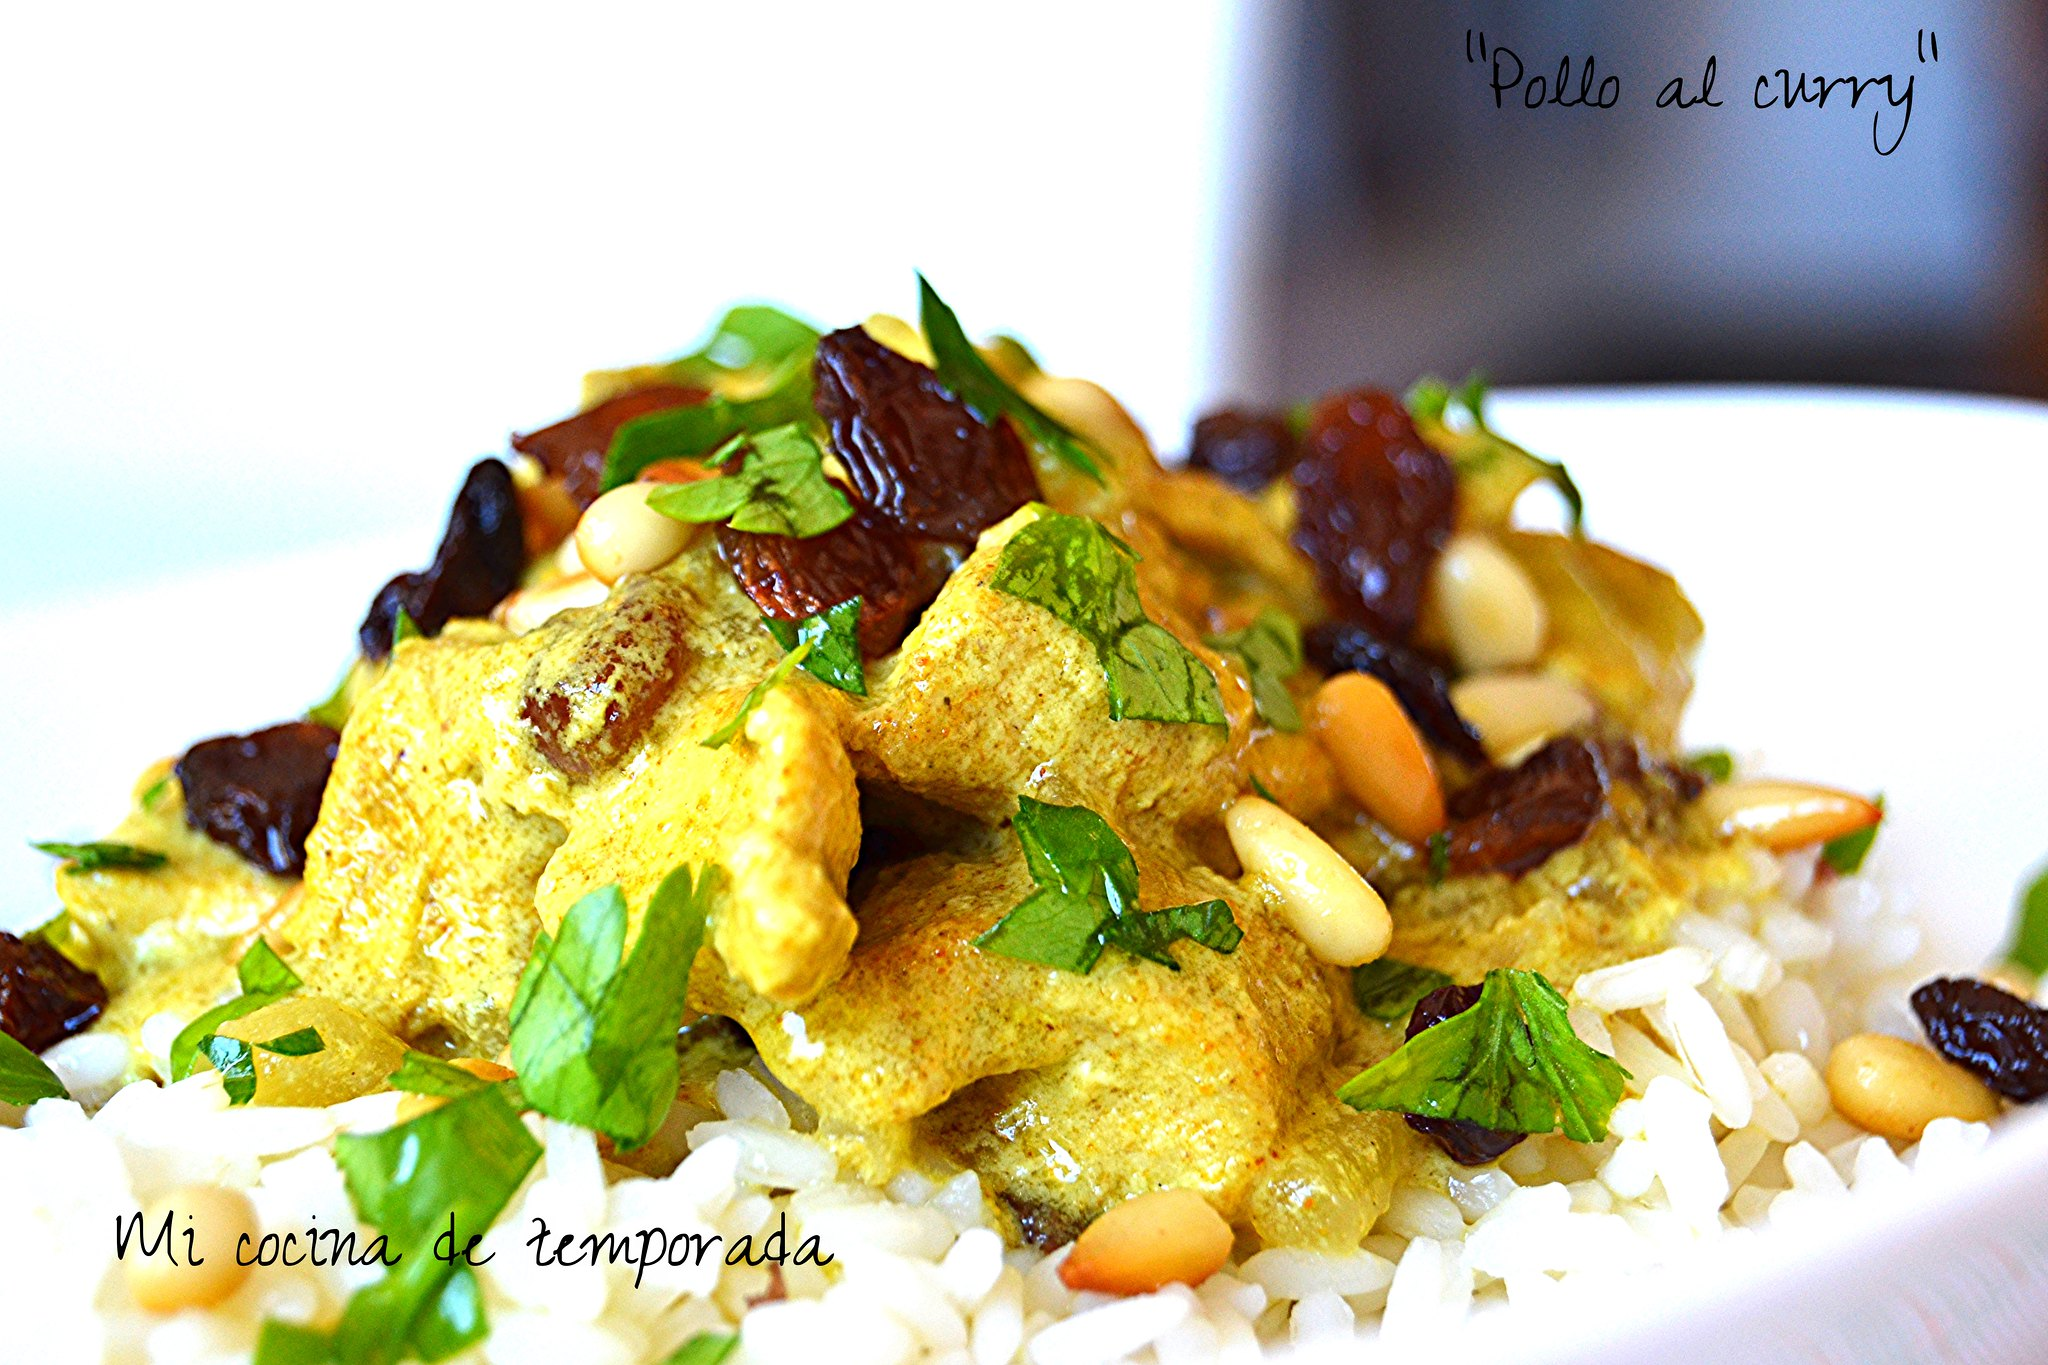 Pollo al curry 022